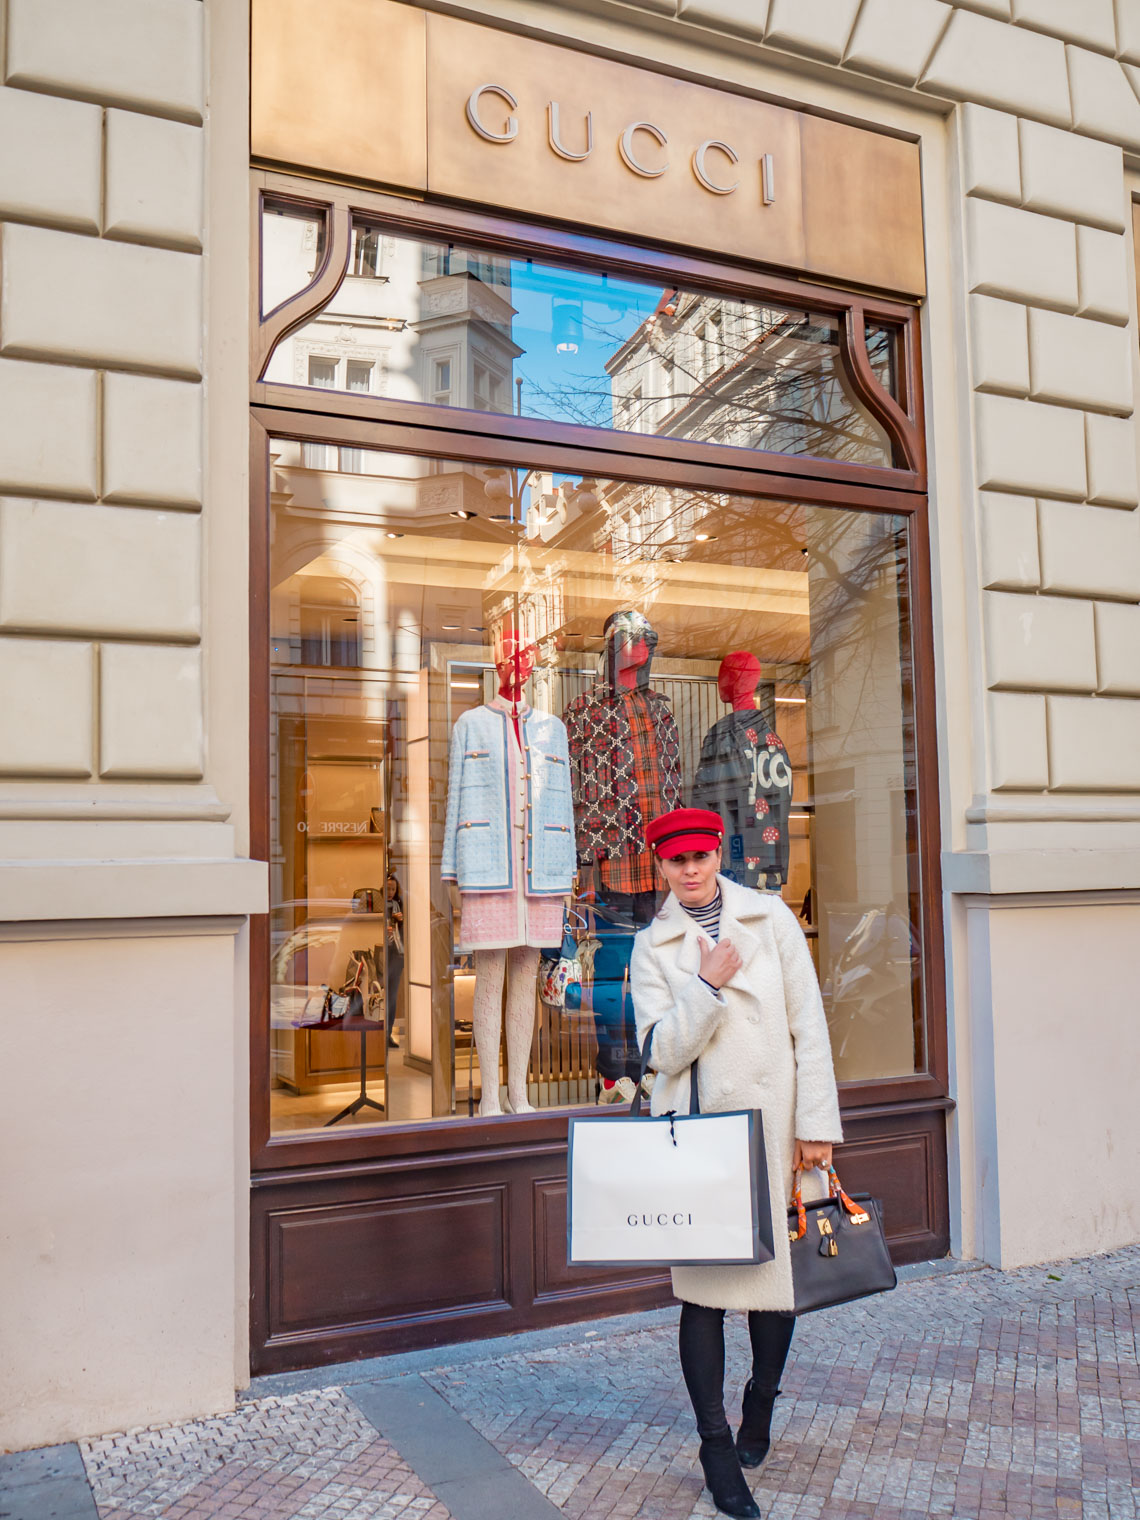 Gucci at Parizska street Prague